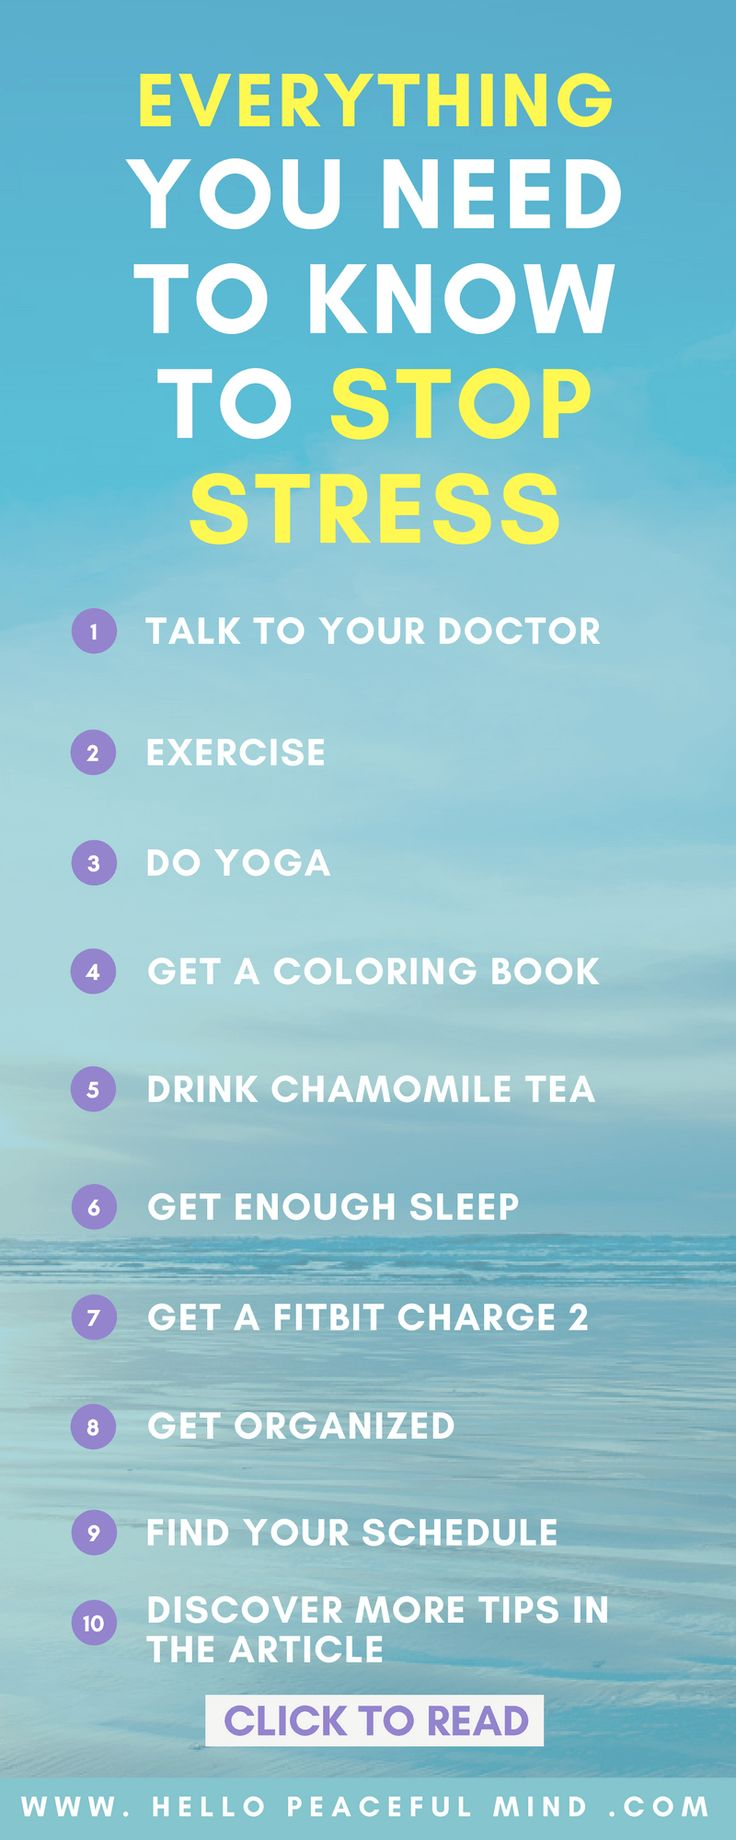 LOVE this article with more that 15 actionable tips to reduce stress! Read it at www.HelloPeacefulMind.com